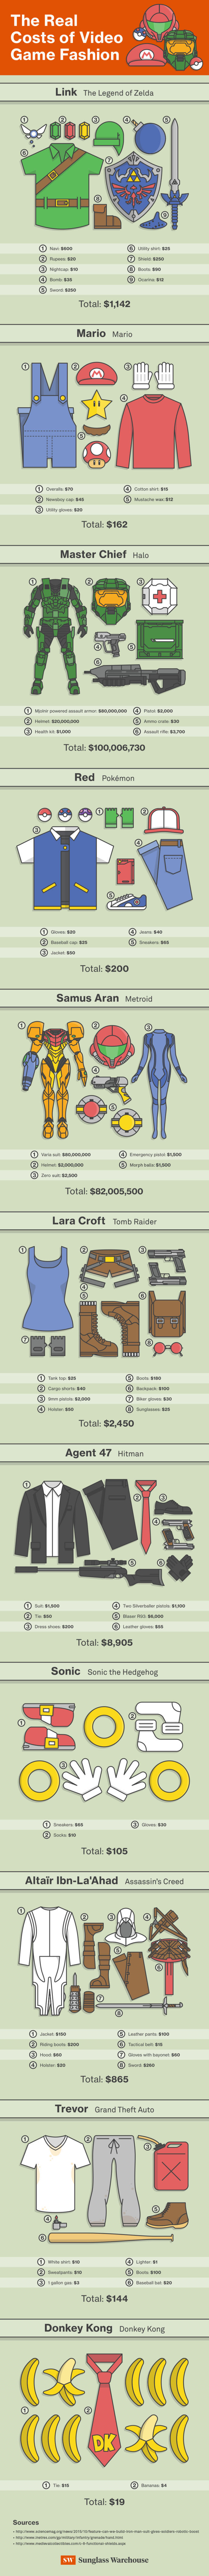 The real cost of video games fashion